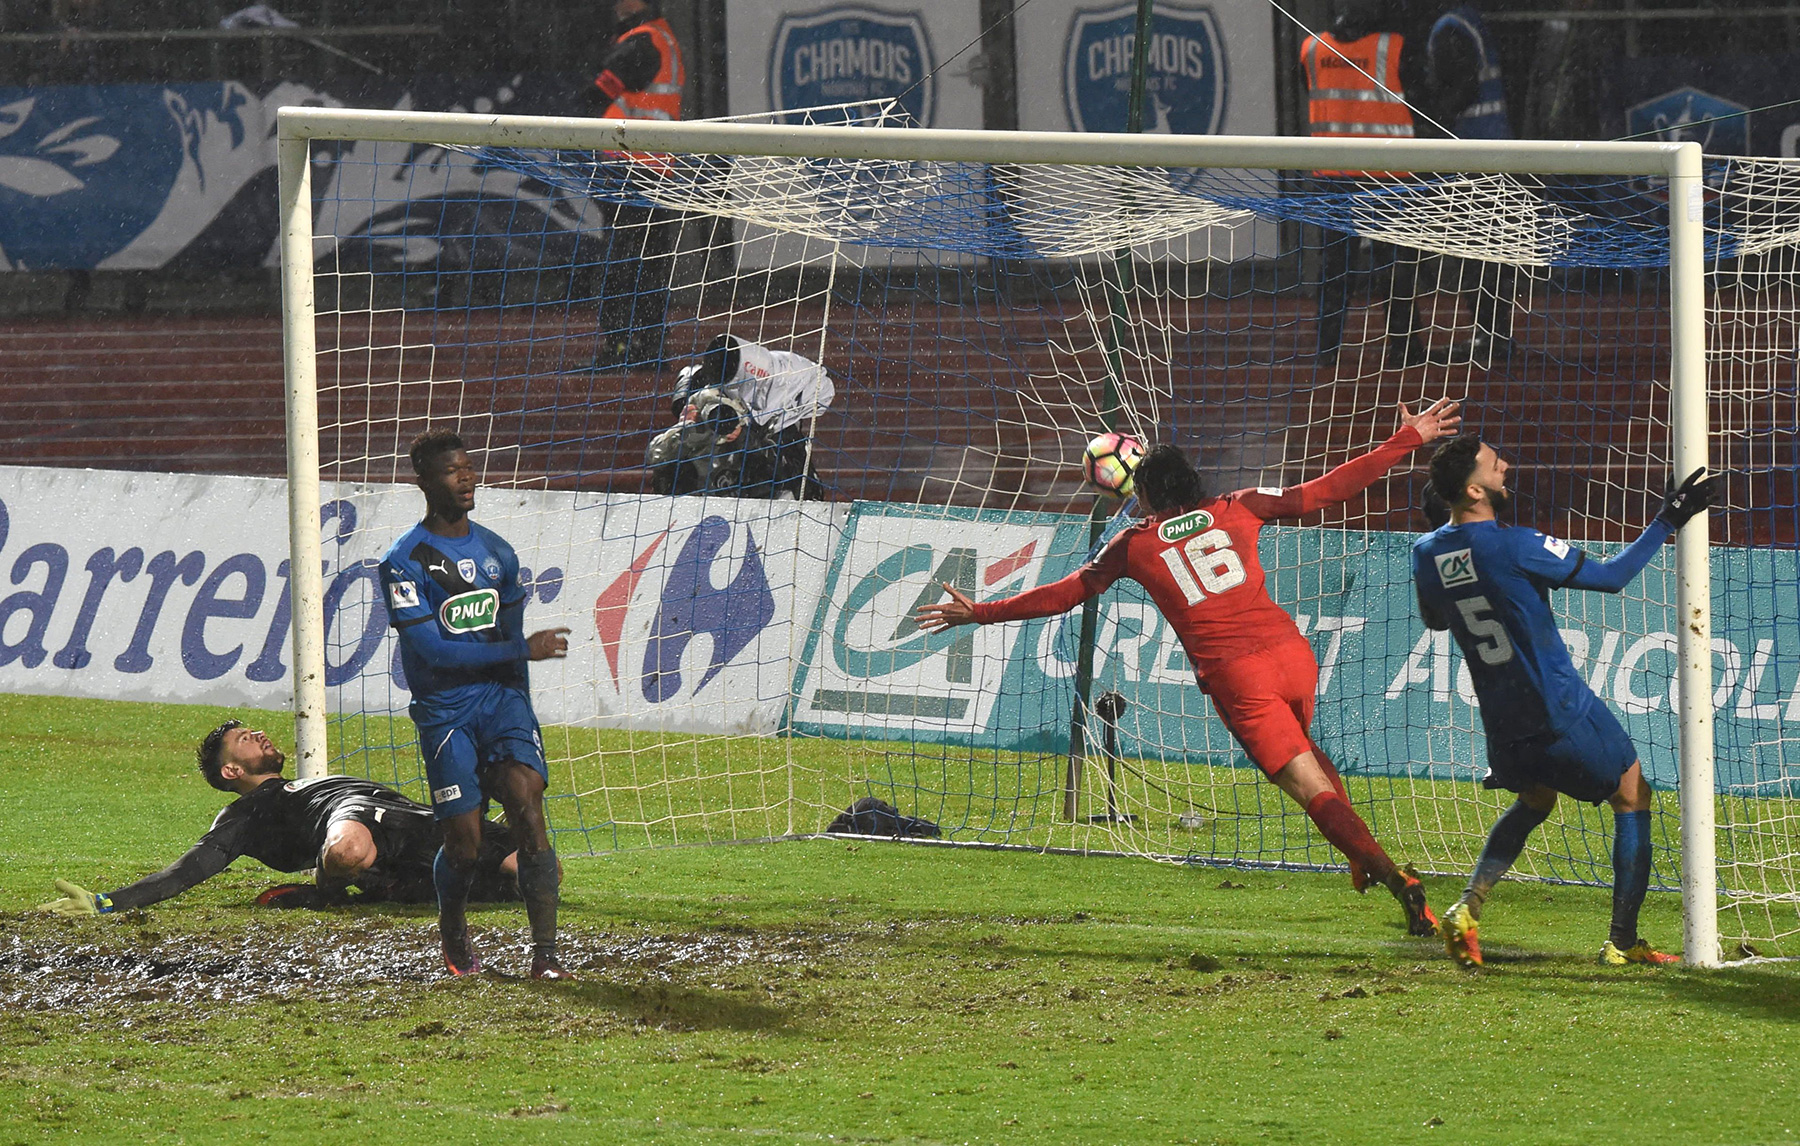 Match in photos psg squeeze past niort in coupe de france - Match psg montpellier coupe de france ...